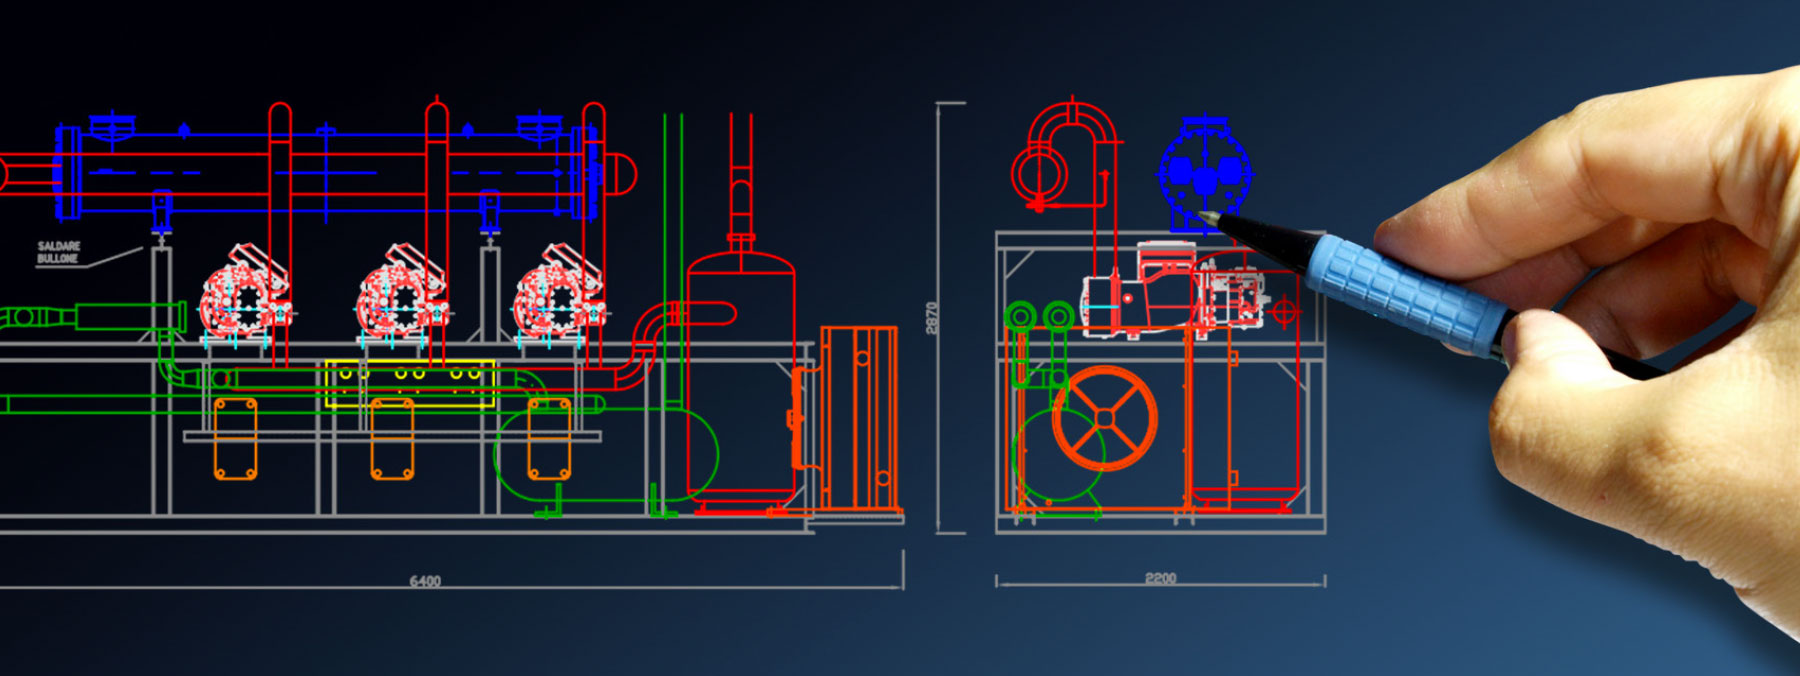 Refrigeration plant industrial refrigeration systems - engineering project